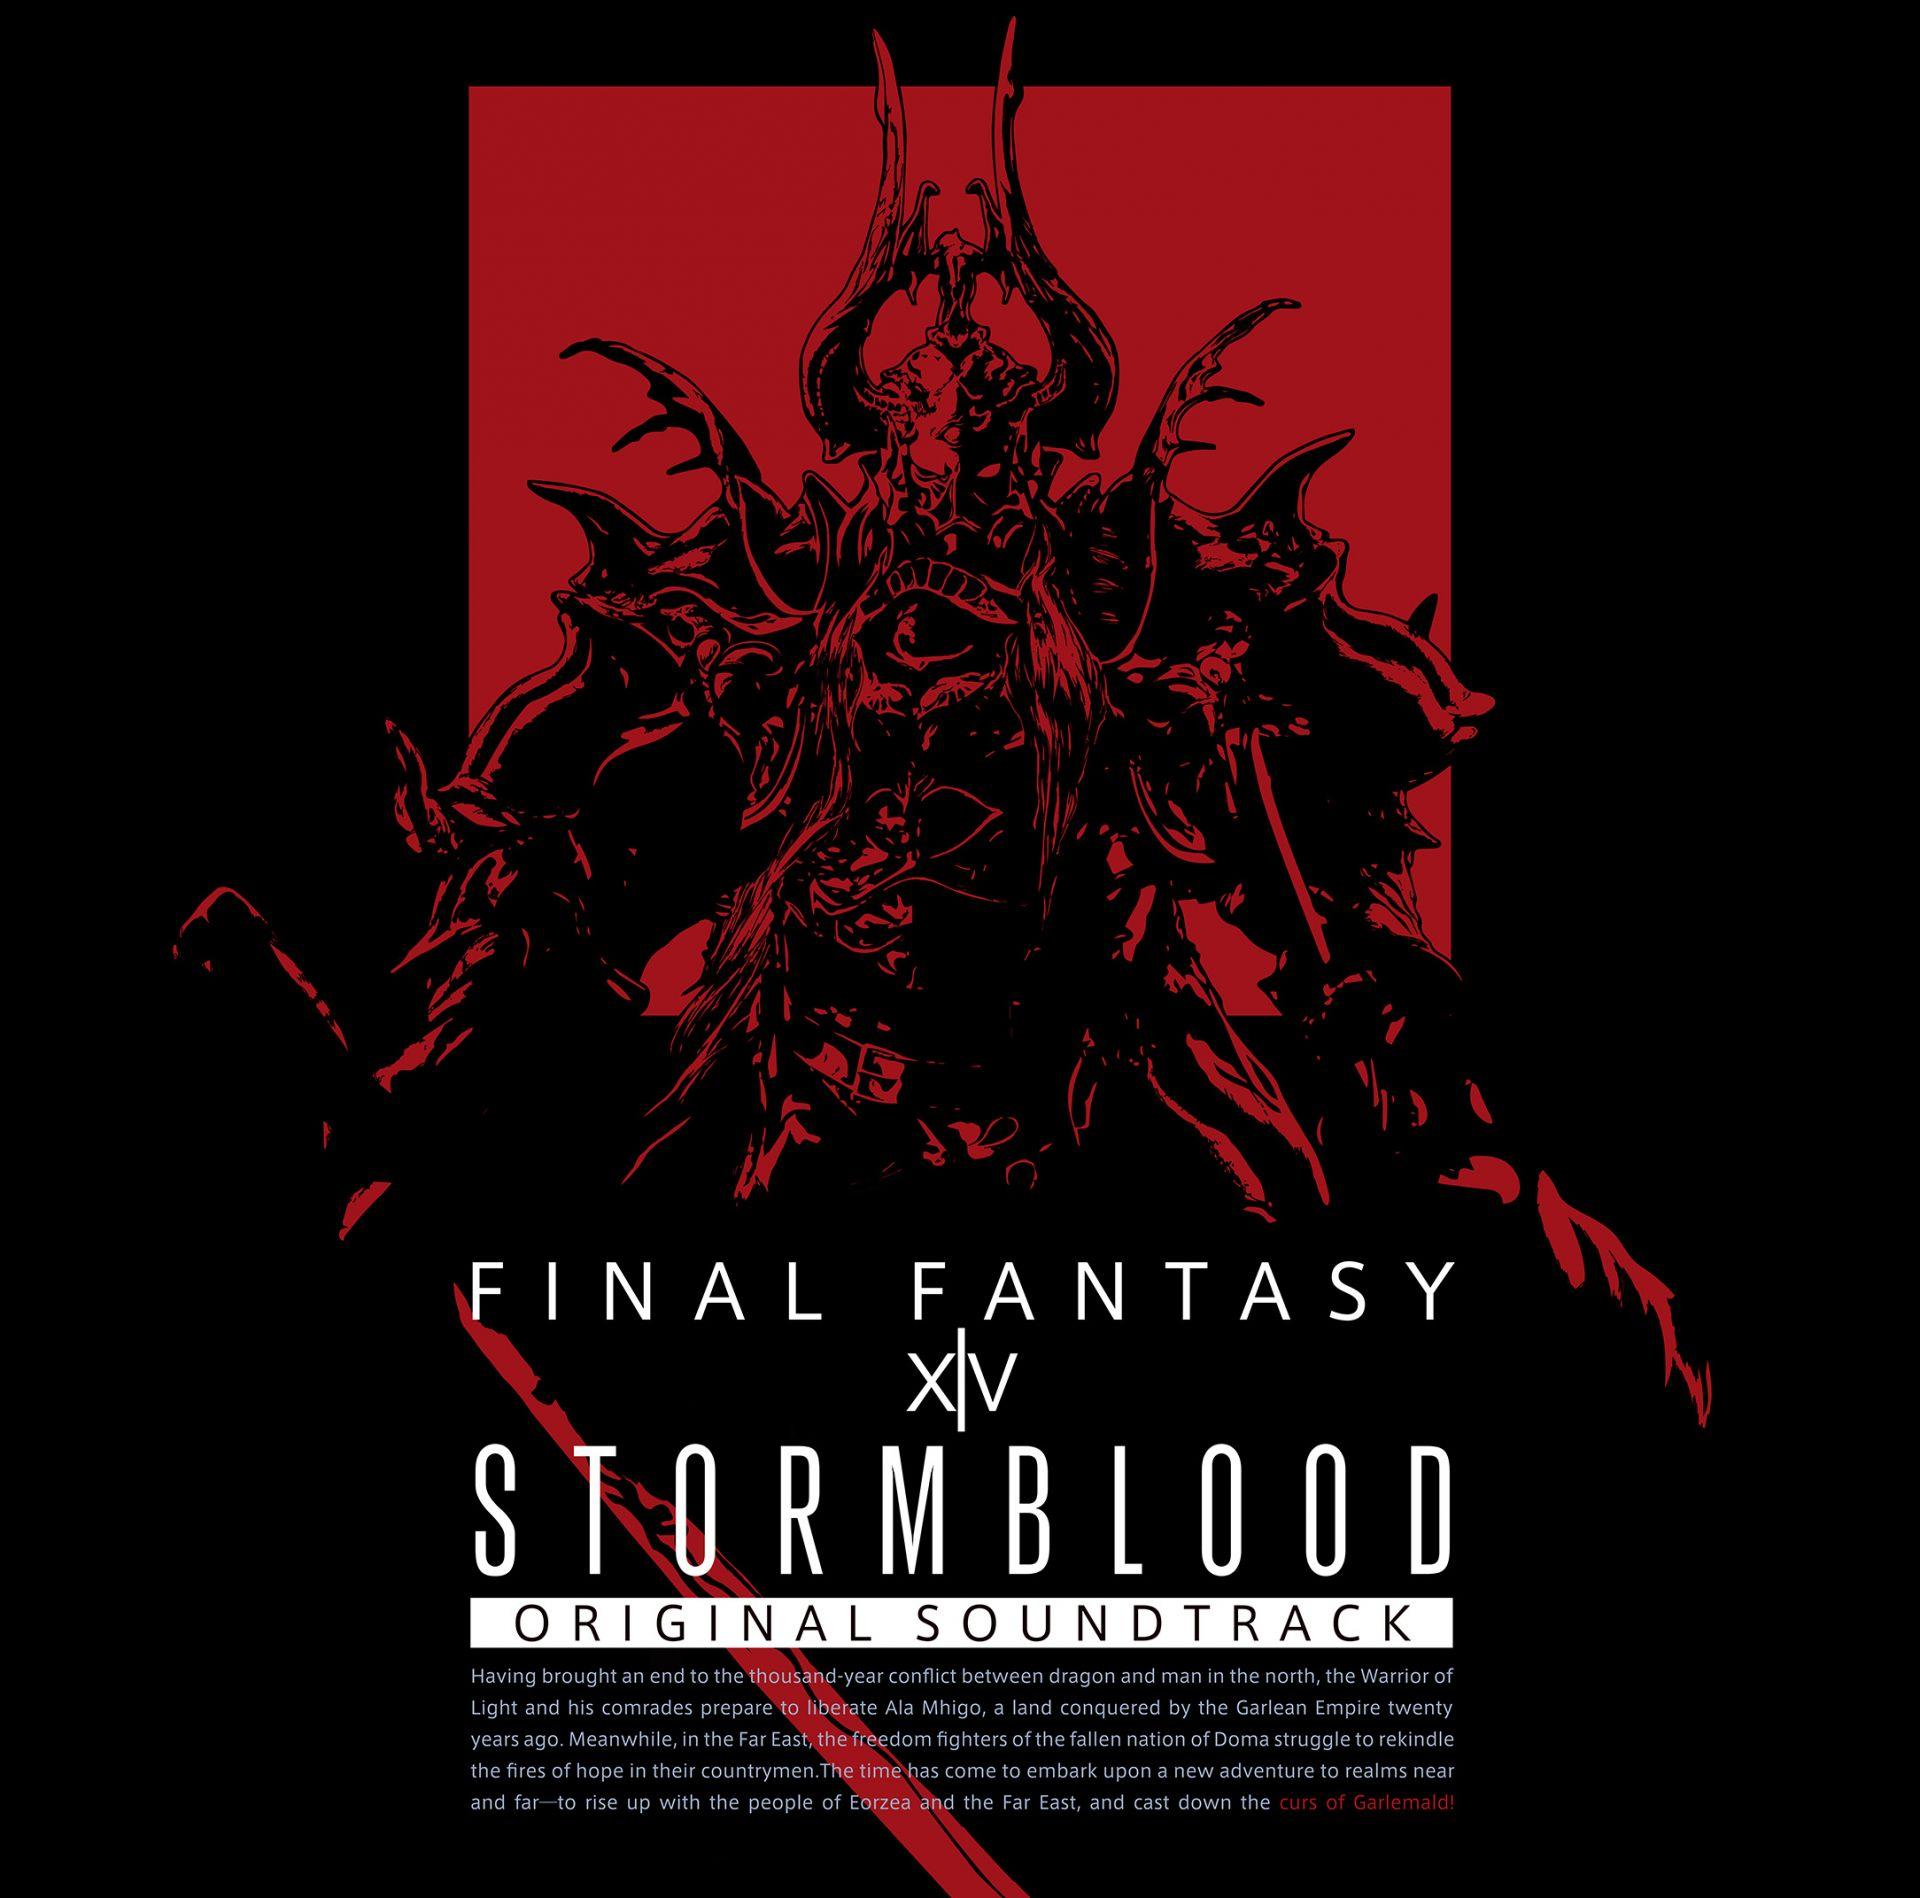 STORMBLOOD: FINAL FANTASY XIV Original Soundtrack [Blu-ray]